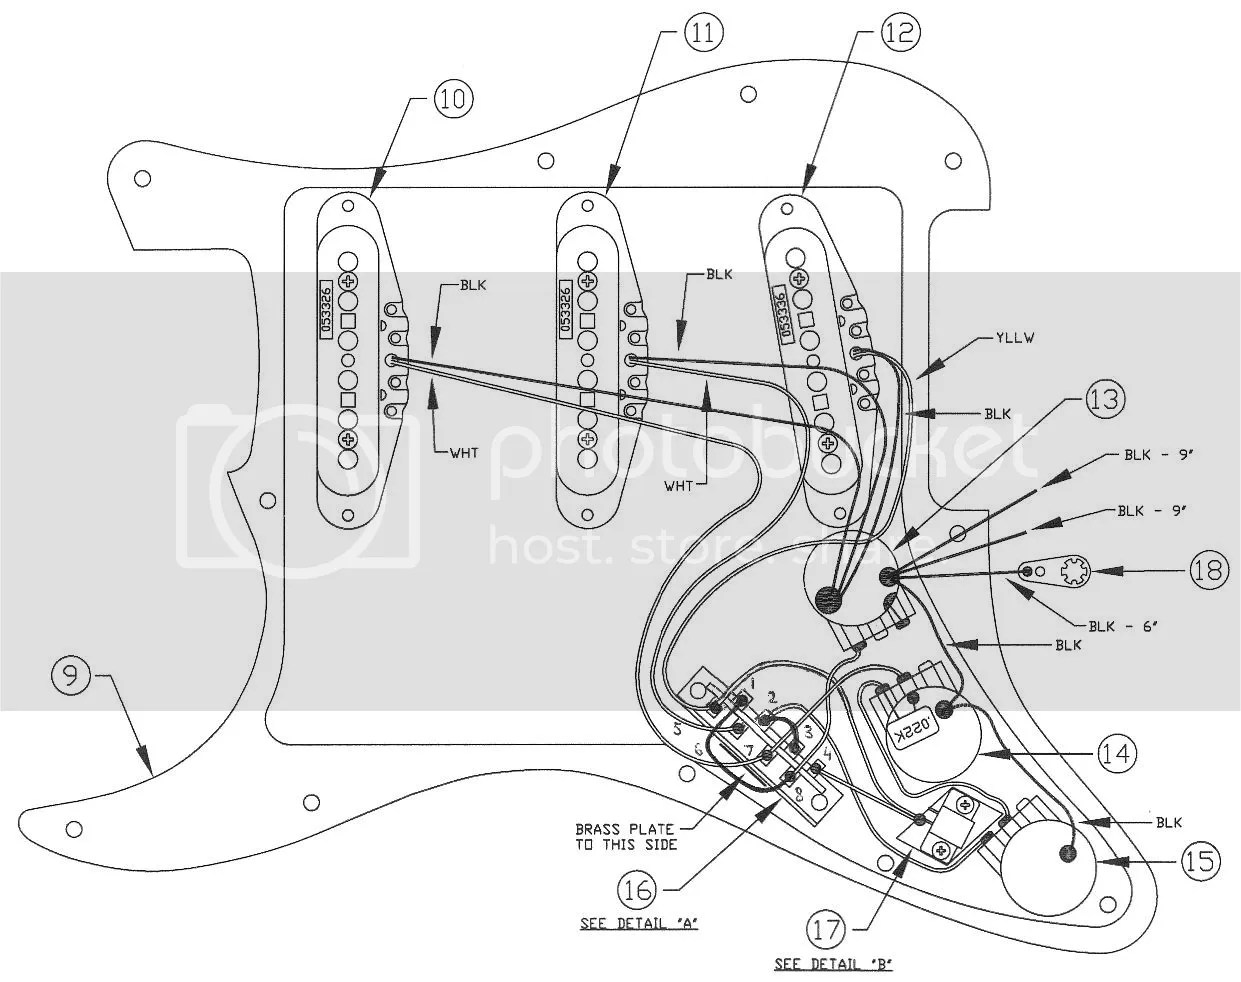 Fender Strat Pickup Wiring Diagram 2002